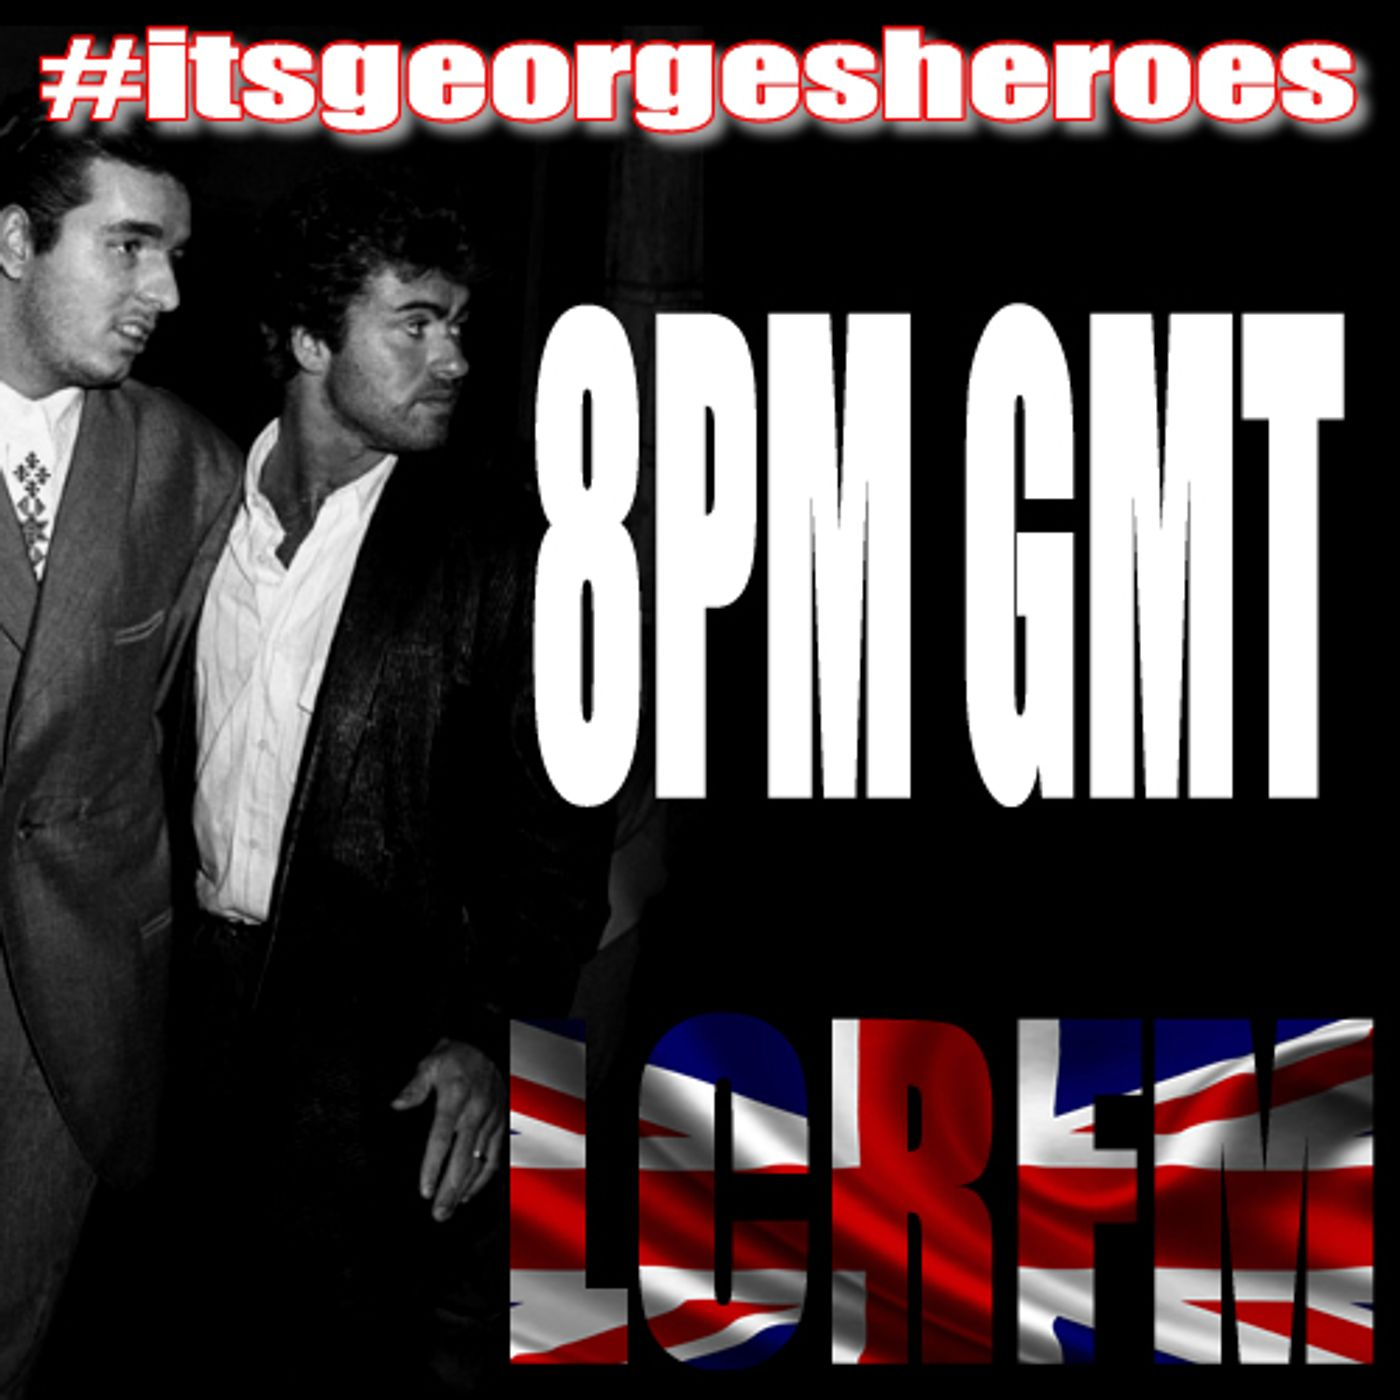 itsGeorgesheroes ...  the songs that George Michael ...  grew up listening to ... & WHAM ... #itsandros